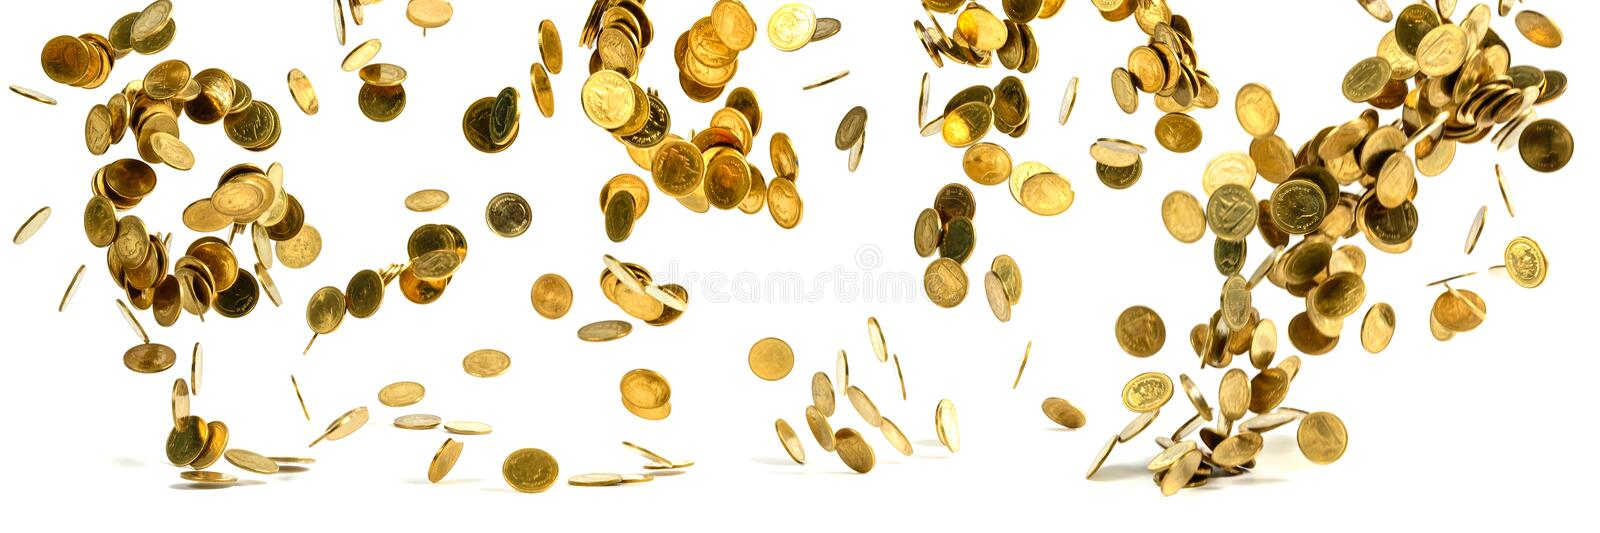 Panorama of falling gold coins money isolated on the white background, business wealth concept. stock photo